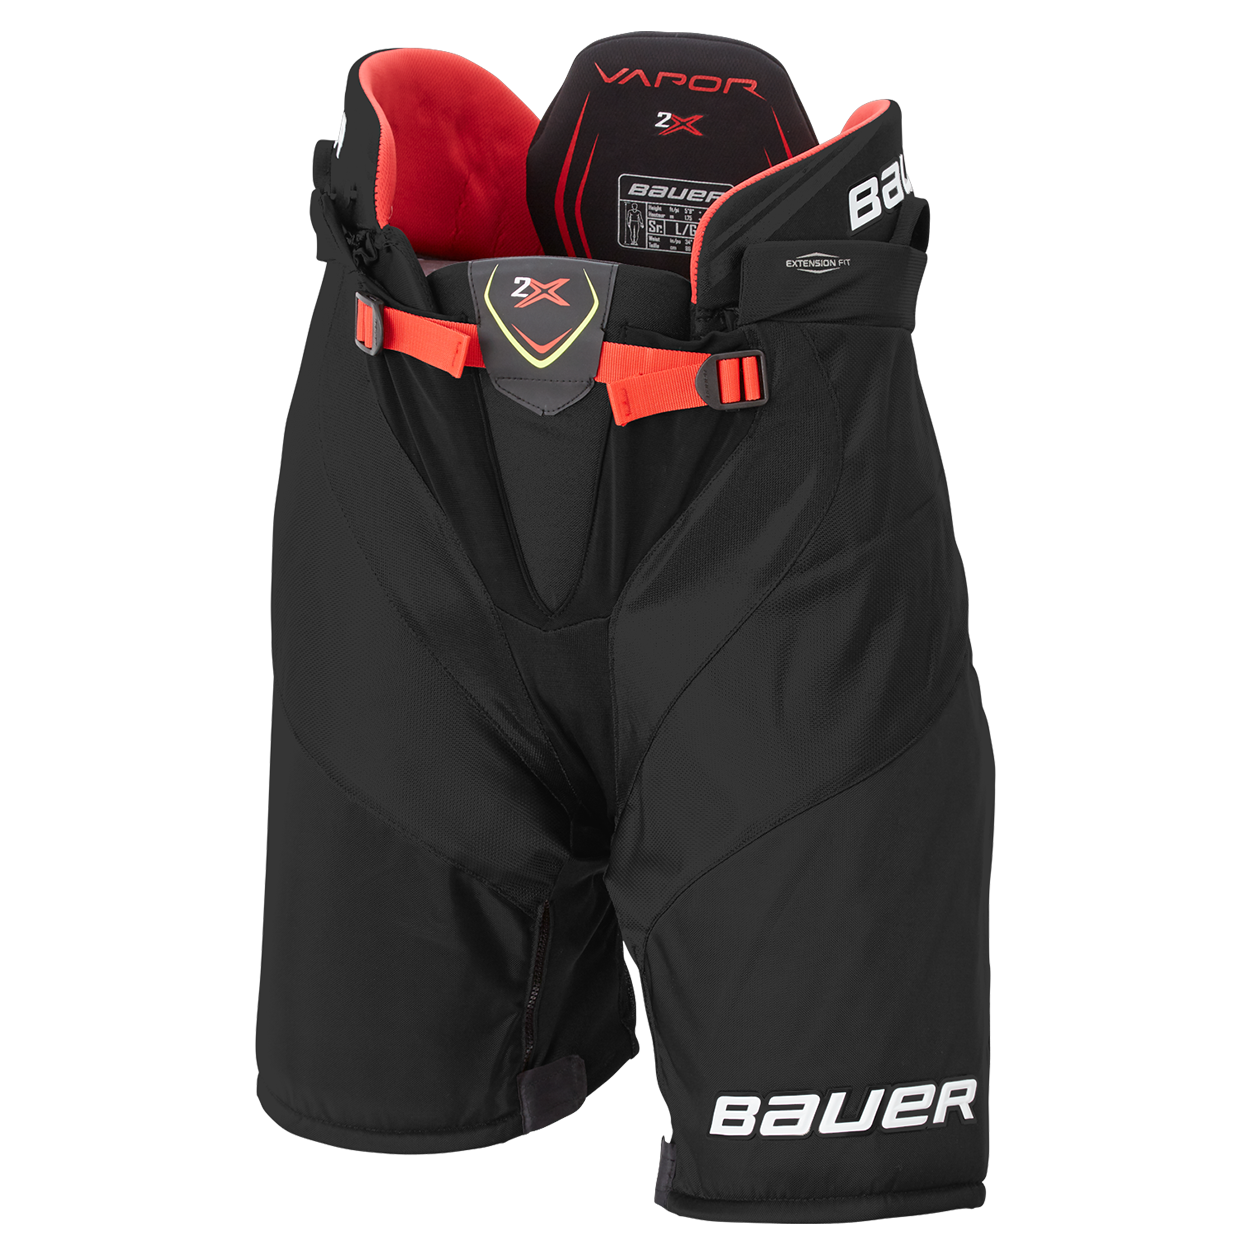 VAPOR 2X Pants Senior,Svart,medium